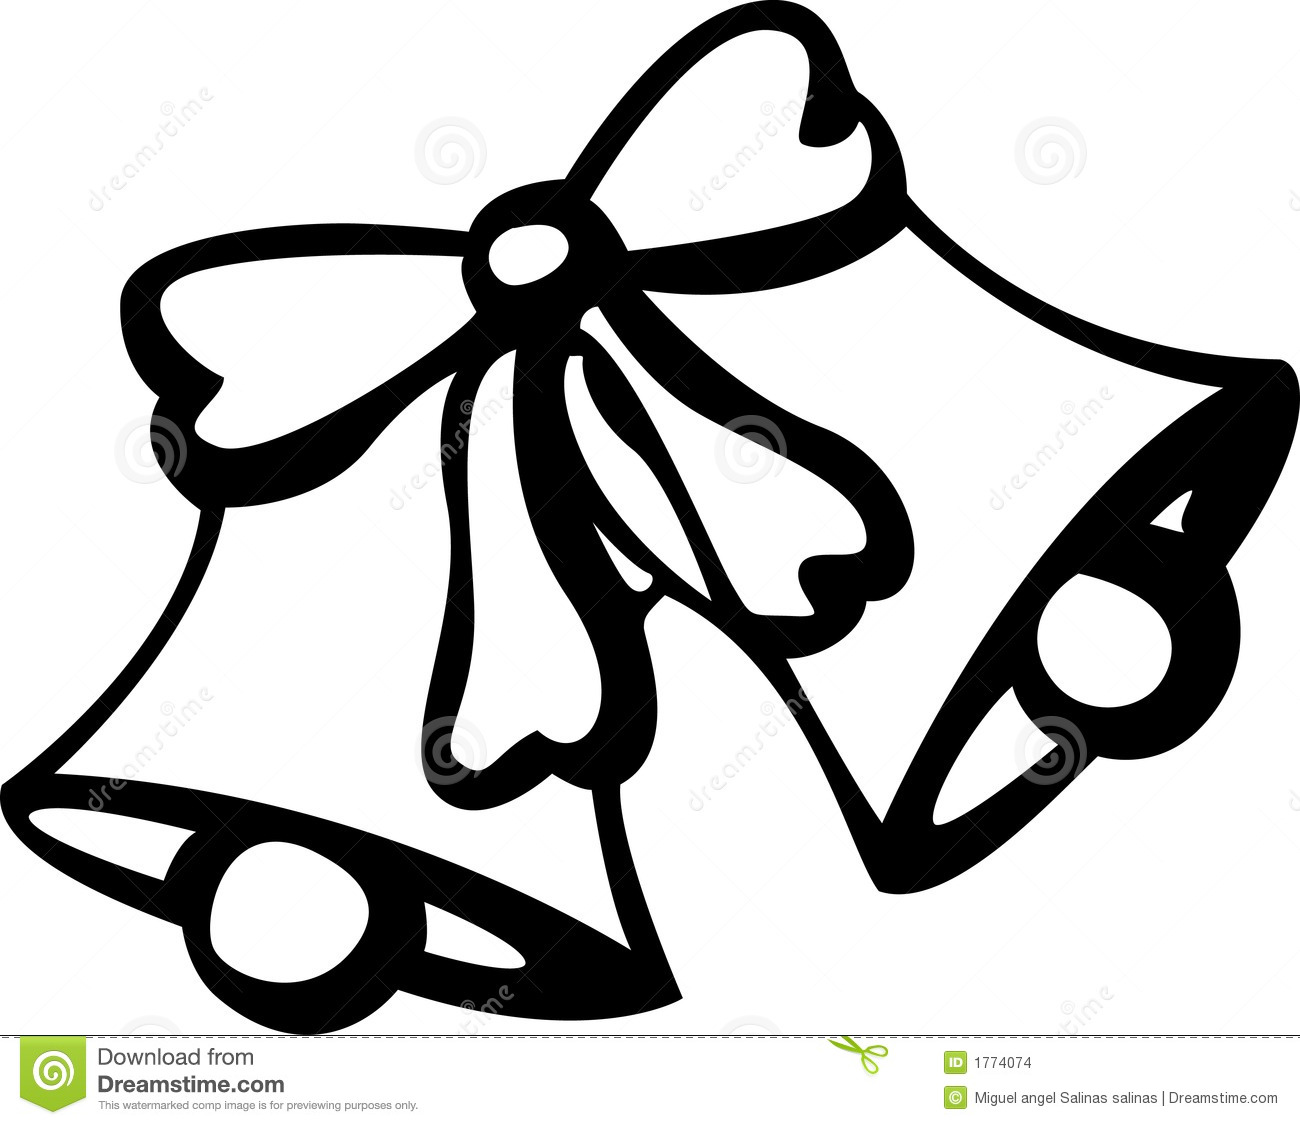 Bell black and white clipart clip download Bell Clipart Black And White | Free download best Bell Clipart Black ... clip download